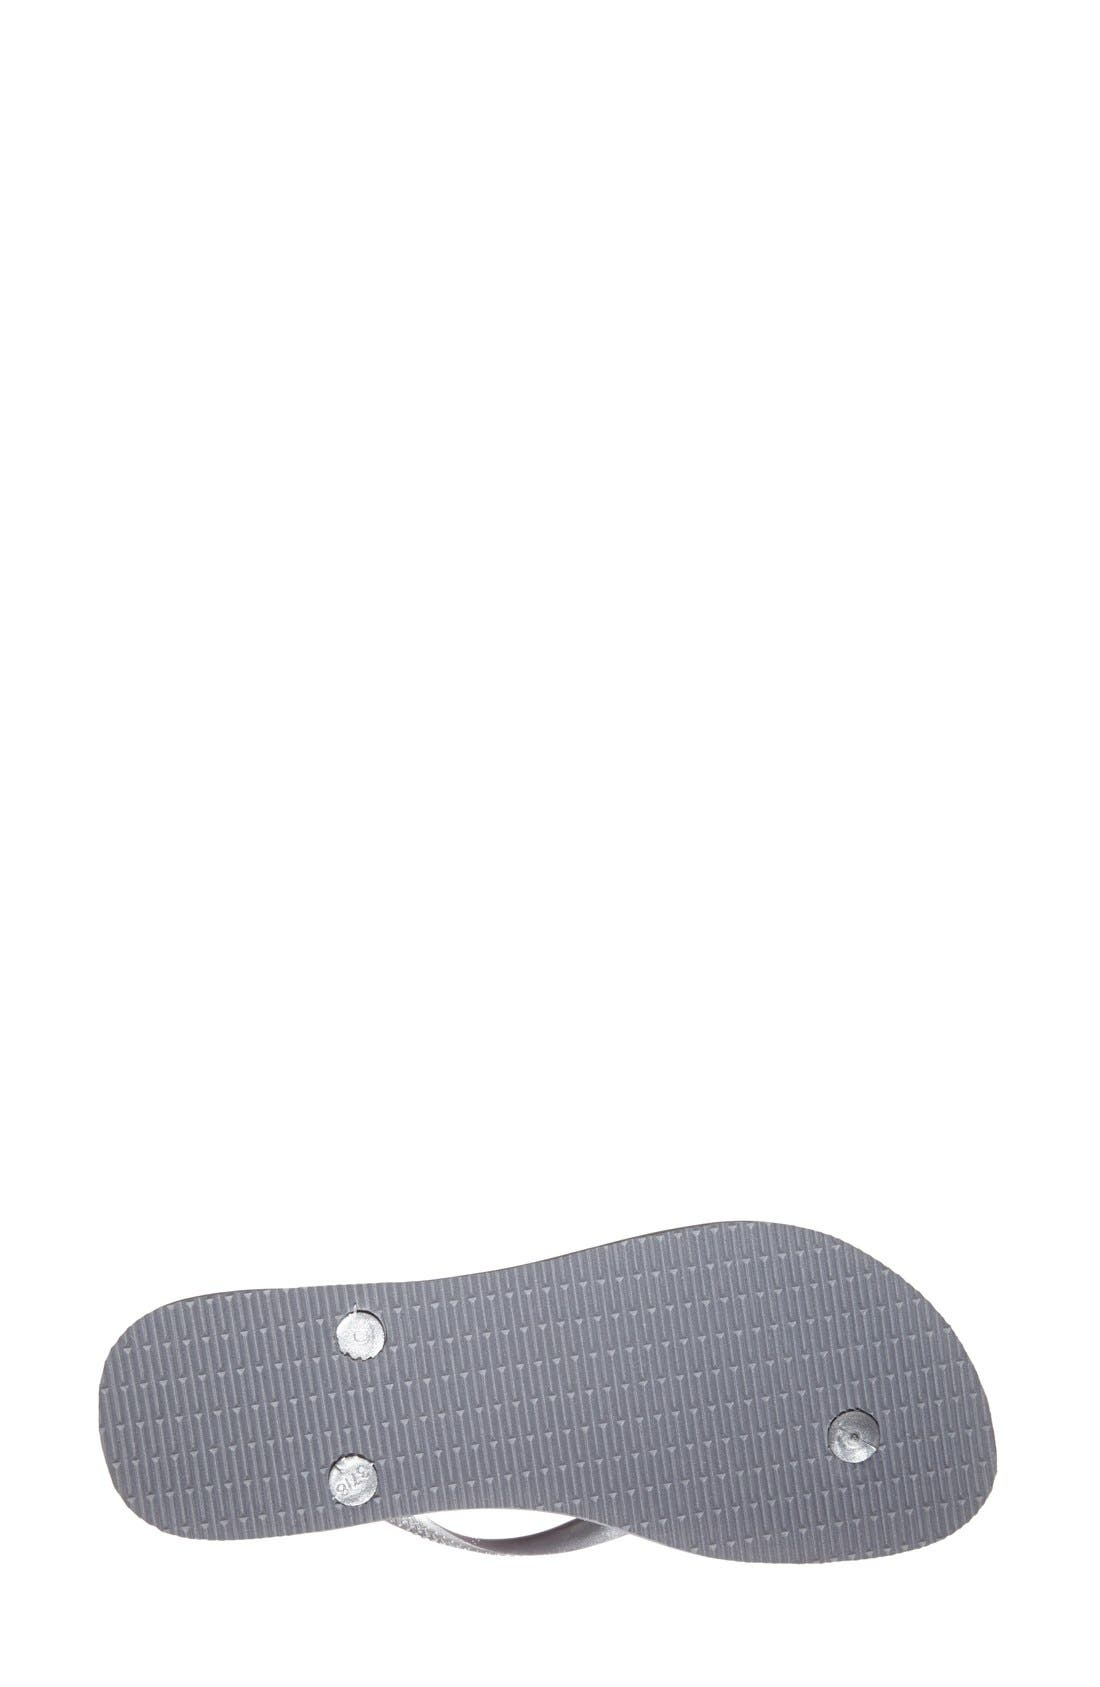 'Slim' Flip Flop,                             Alternate thumbnail 6, color,                             STEEL GREY